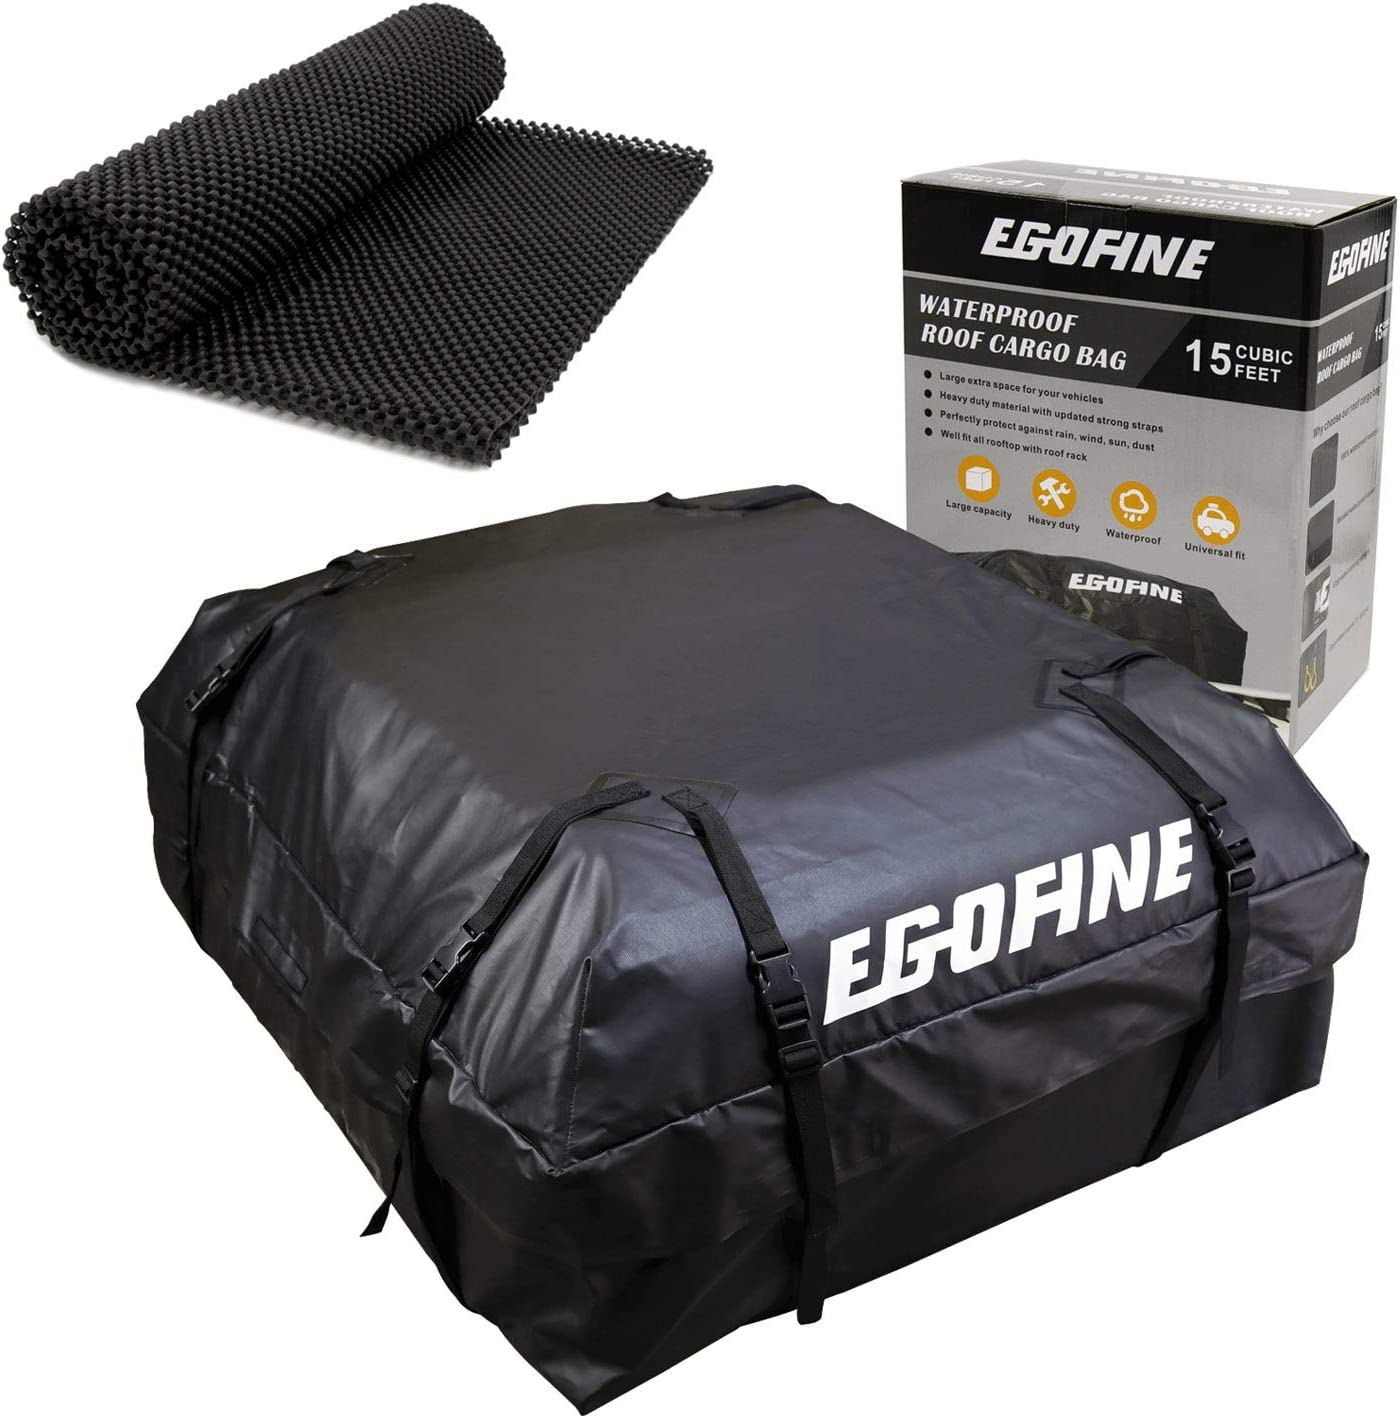 Egofine Car Roof Bag with Protective Mat